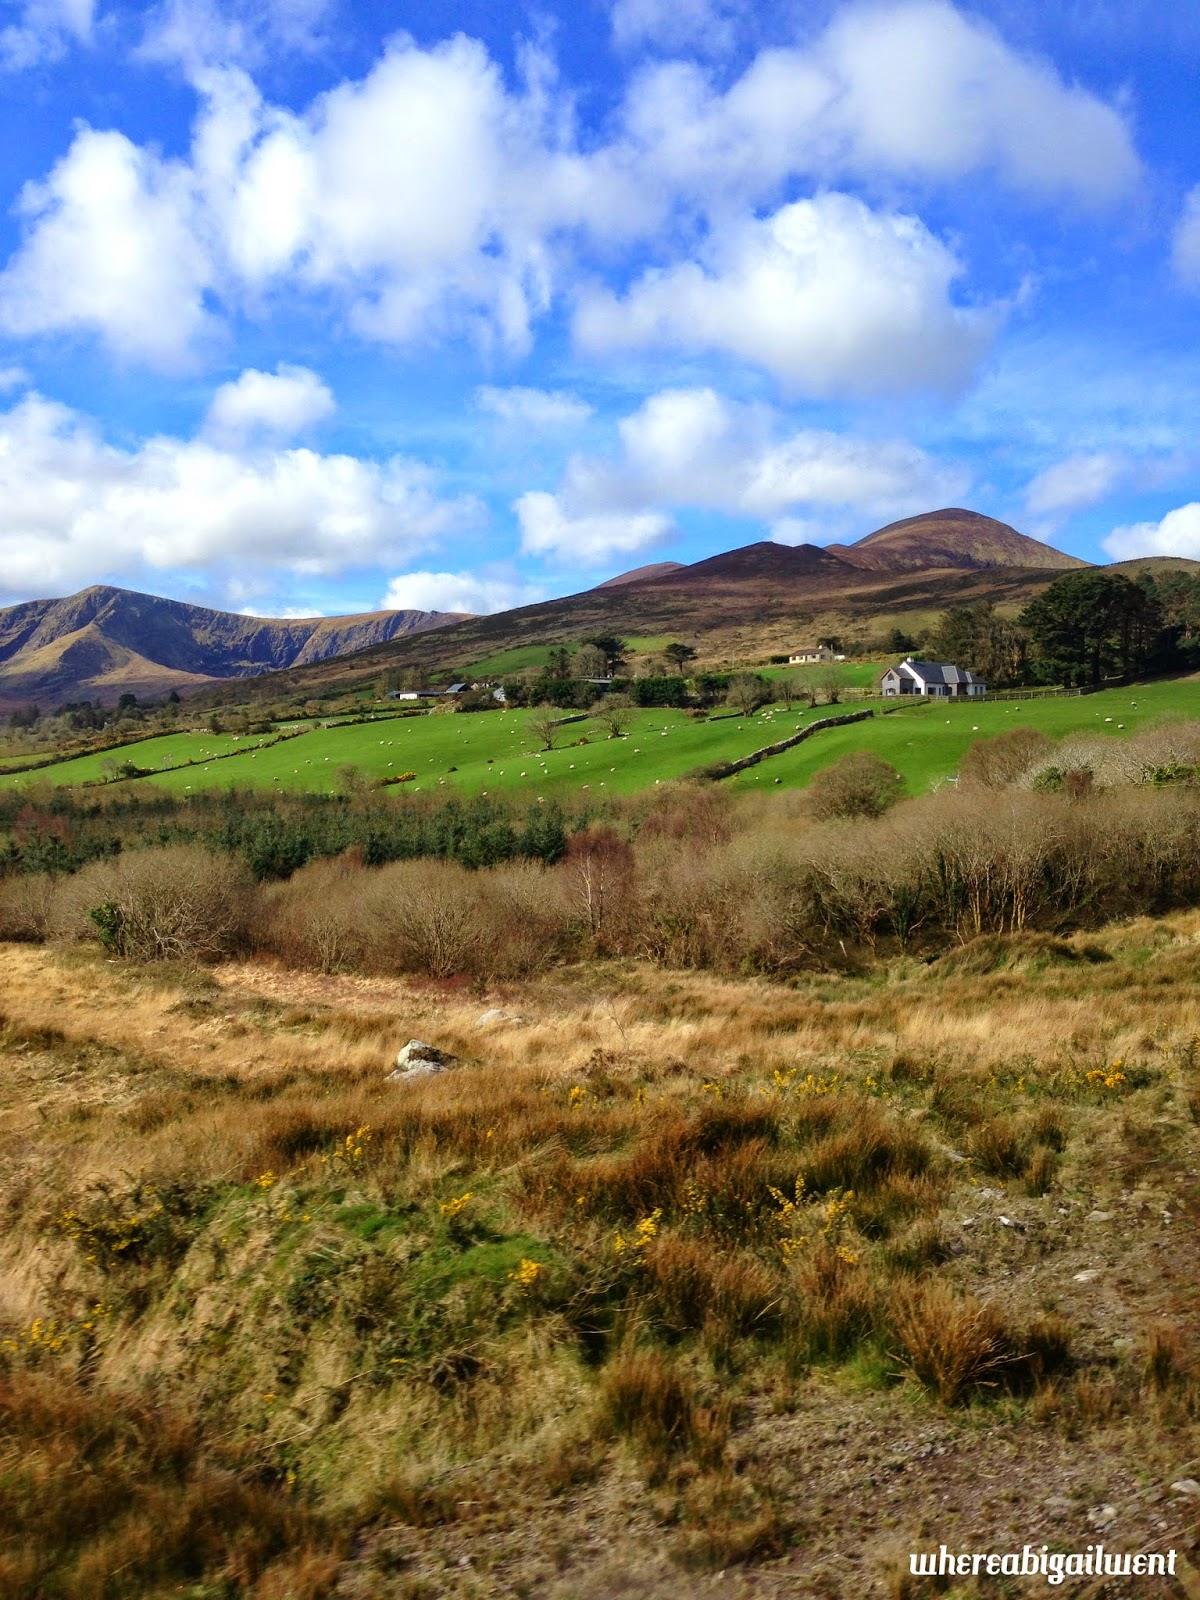 Views of the Irish Countryside